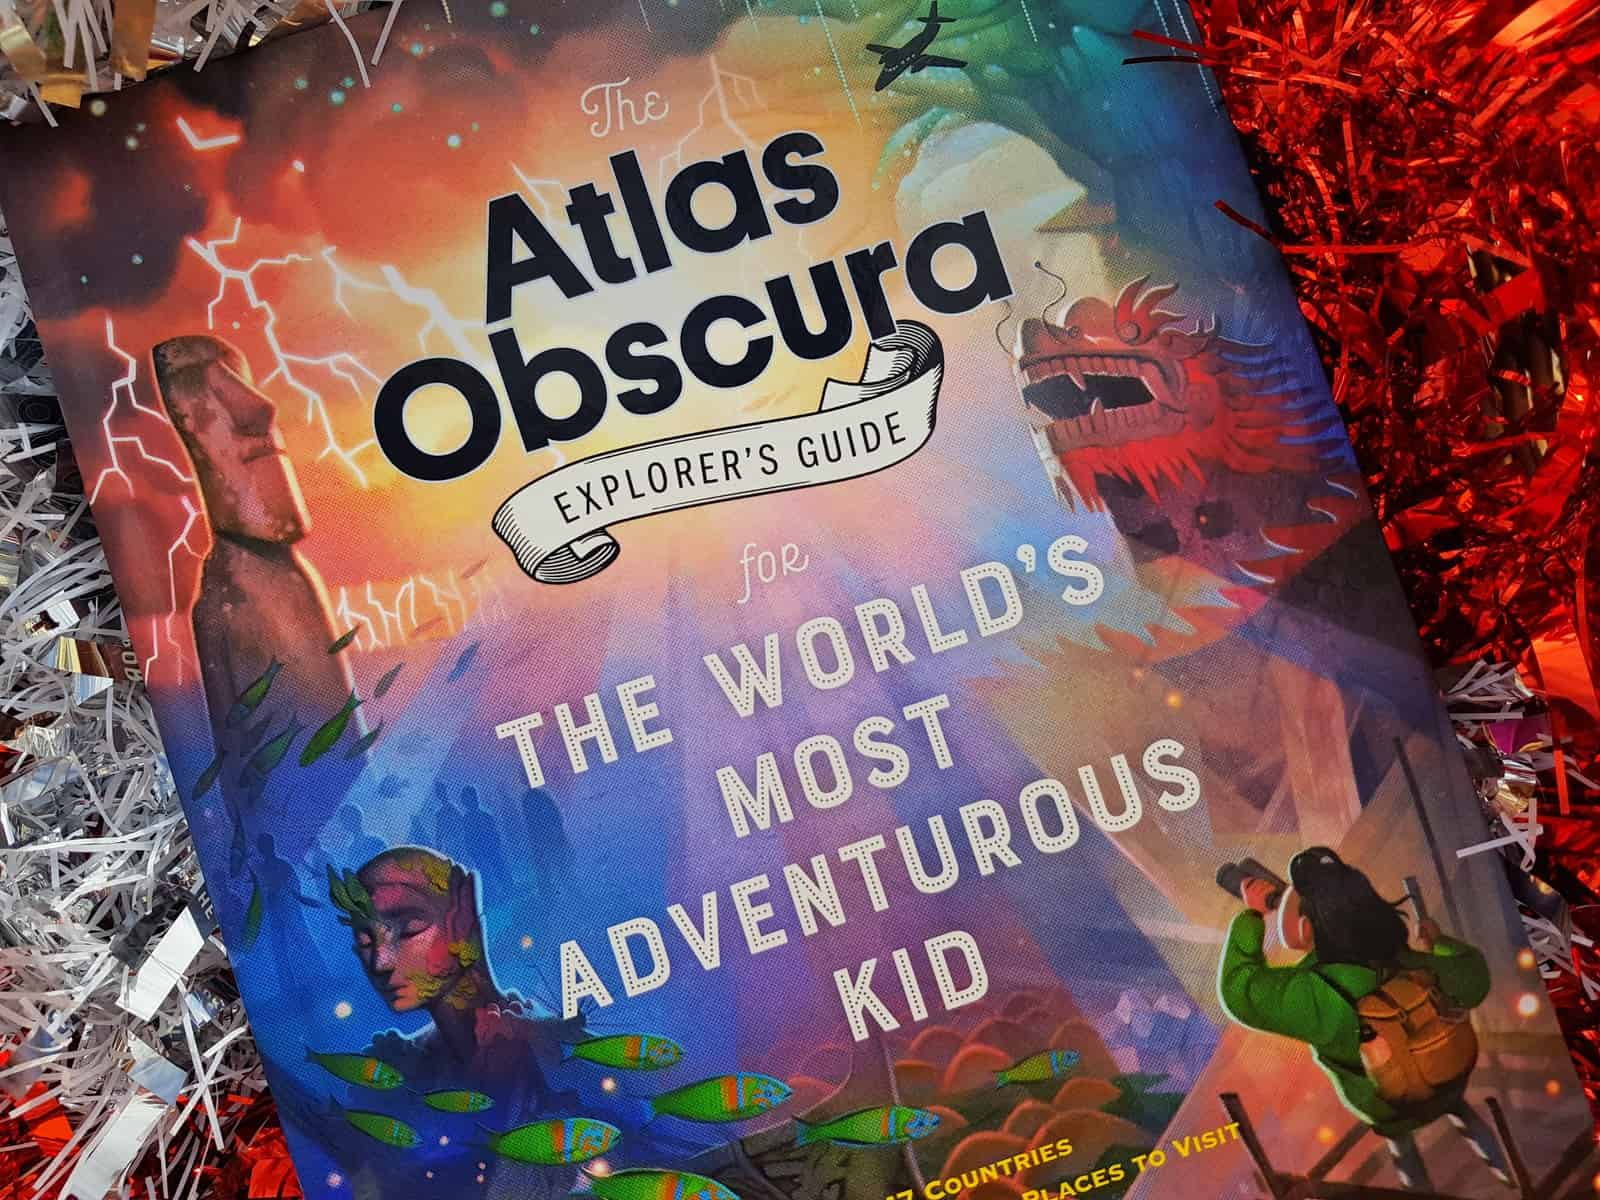 Christmas gift guide for primary school children Atlas Obscura Explorer's Guide